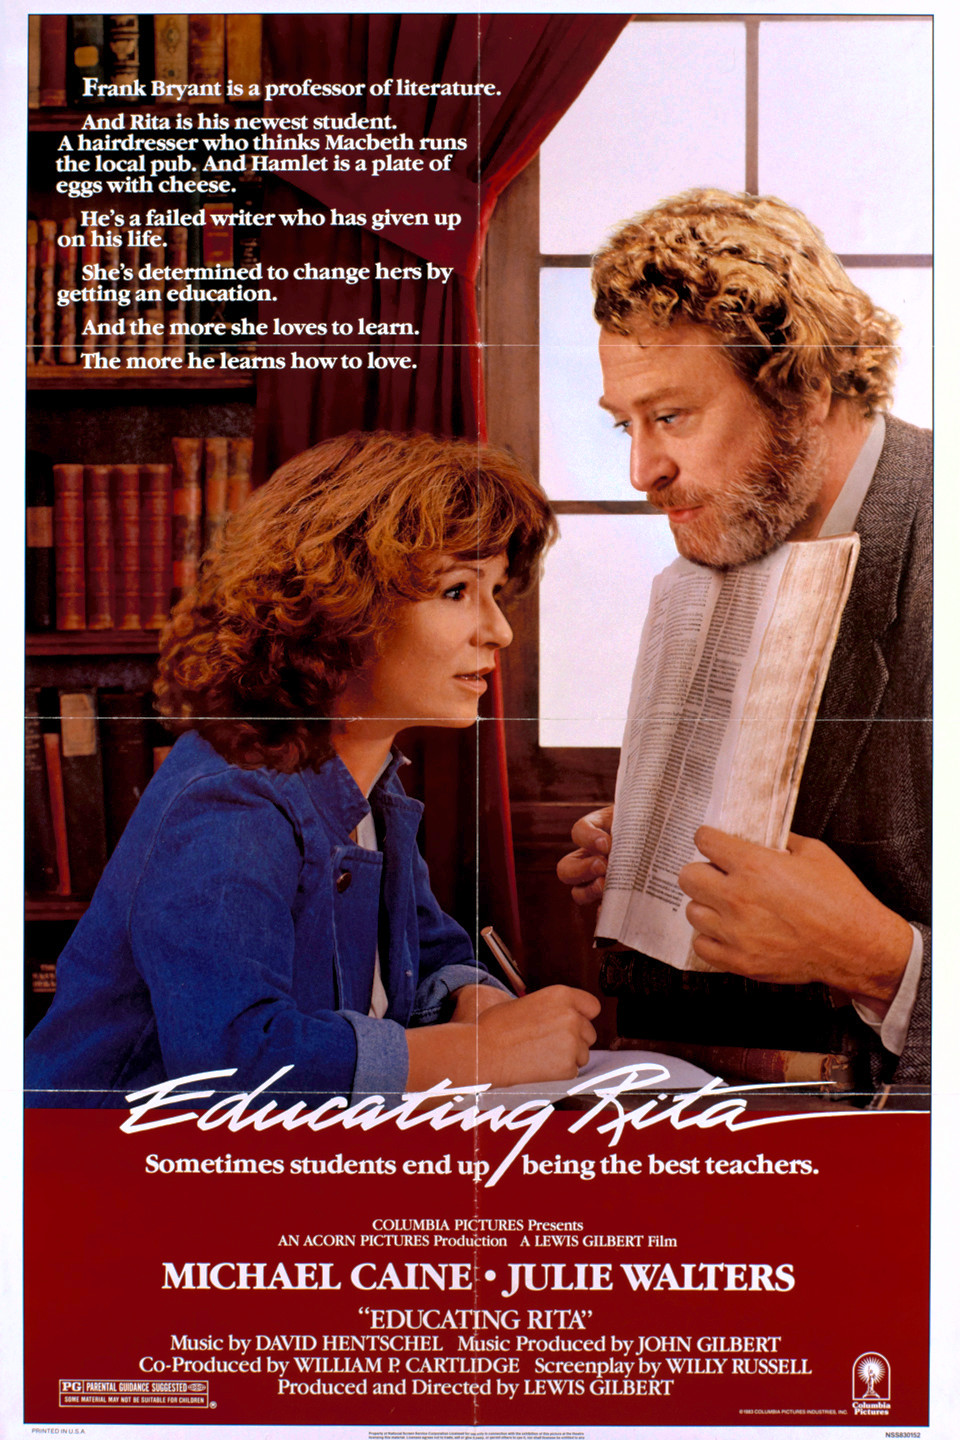 educating rita the social encyclopedia educating rita gstaticcomtvthumbmovieposters7581p7581p